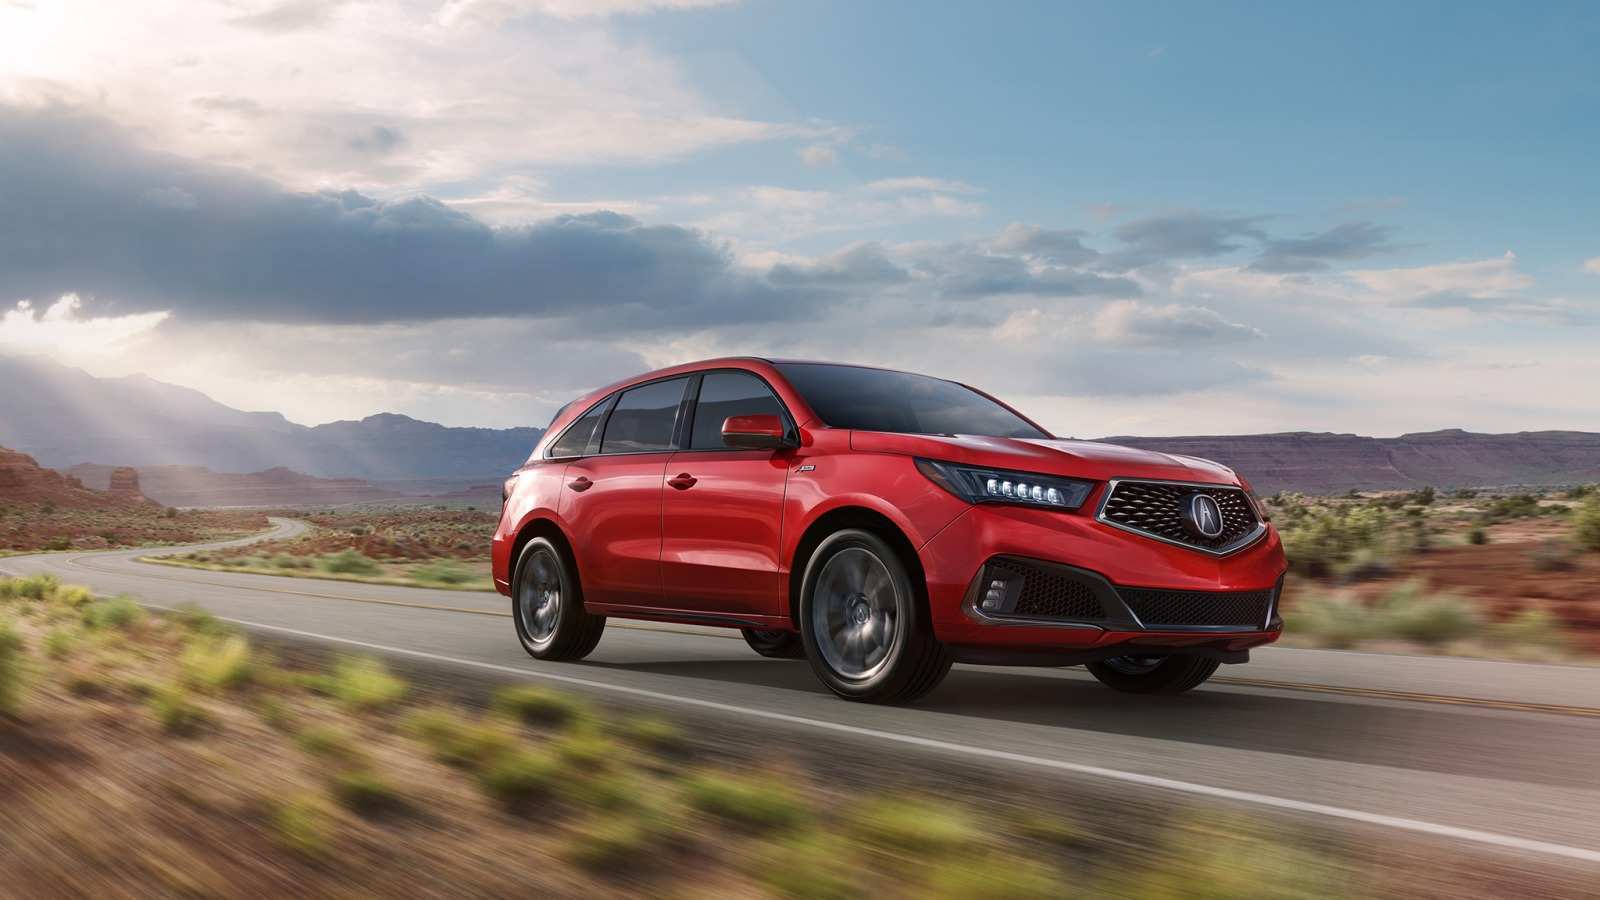 14 Best Review Best 2019 Acura Packages First Drive Images for Best 2019 Acura Packages First Drive